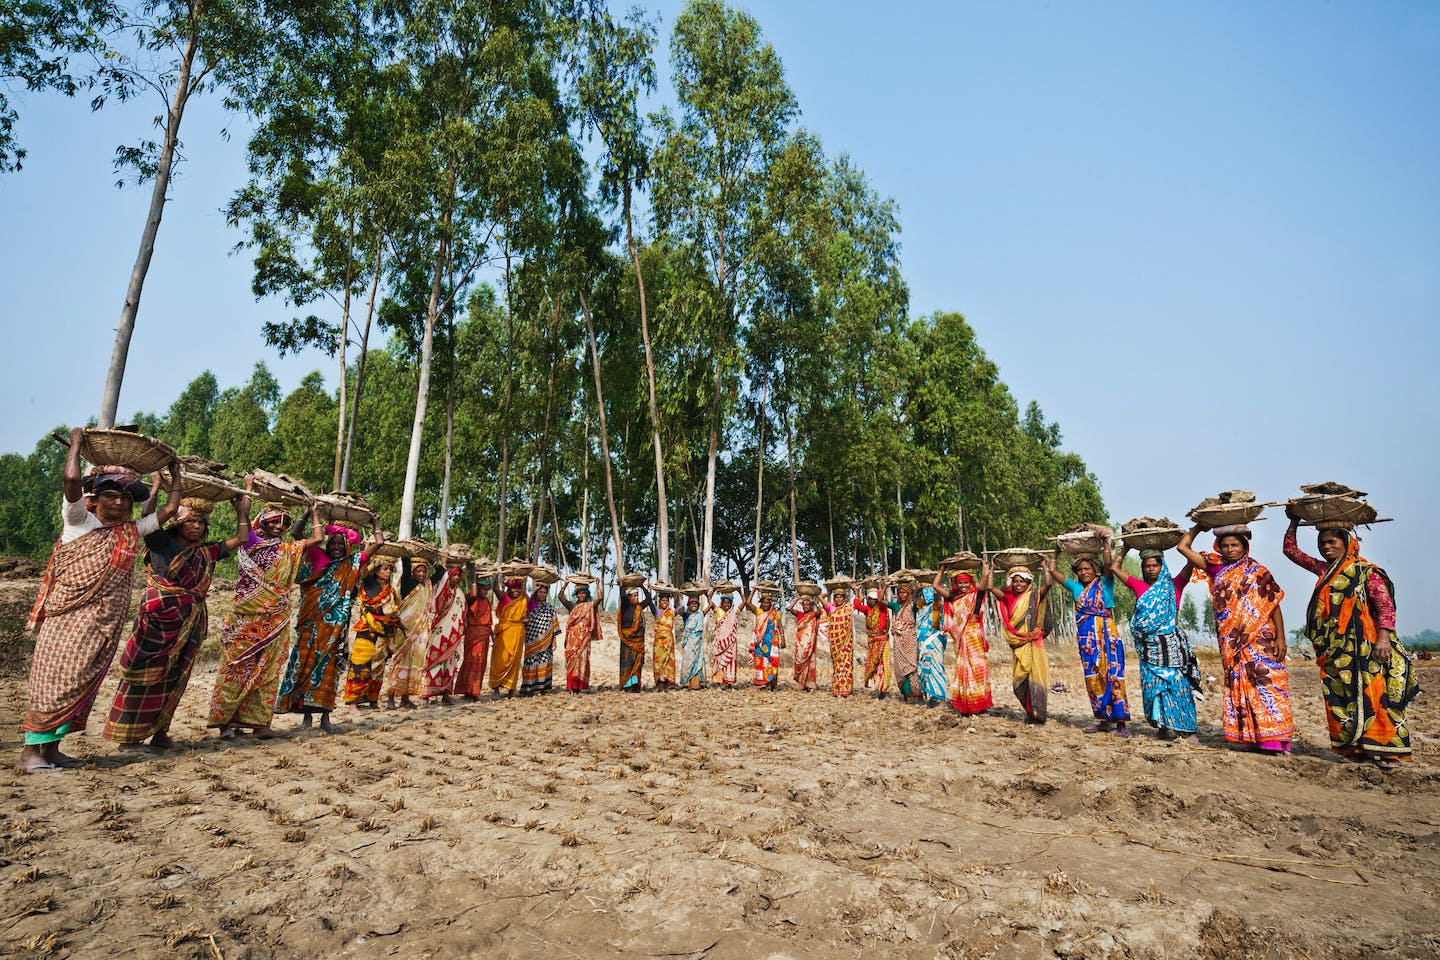 The women of Tongaradha village in Bangladesh